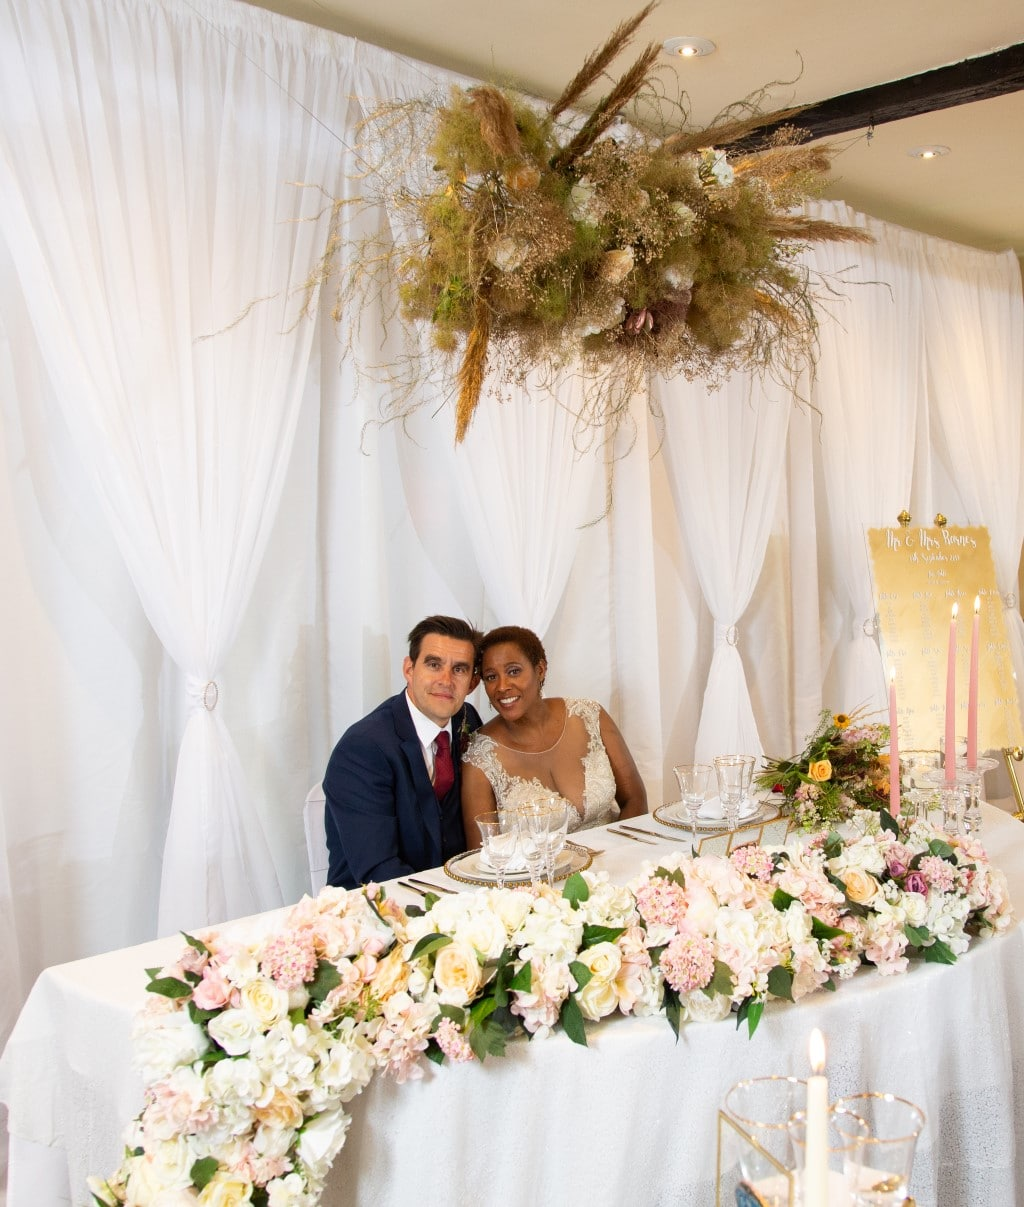 Sweetheart table with cascading floral garland